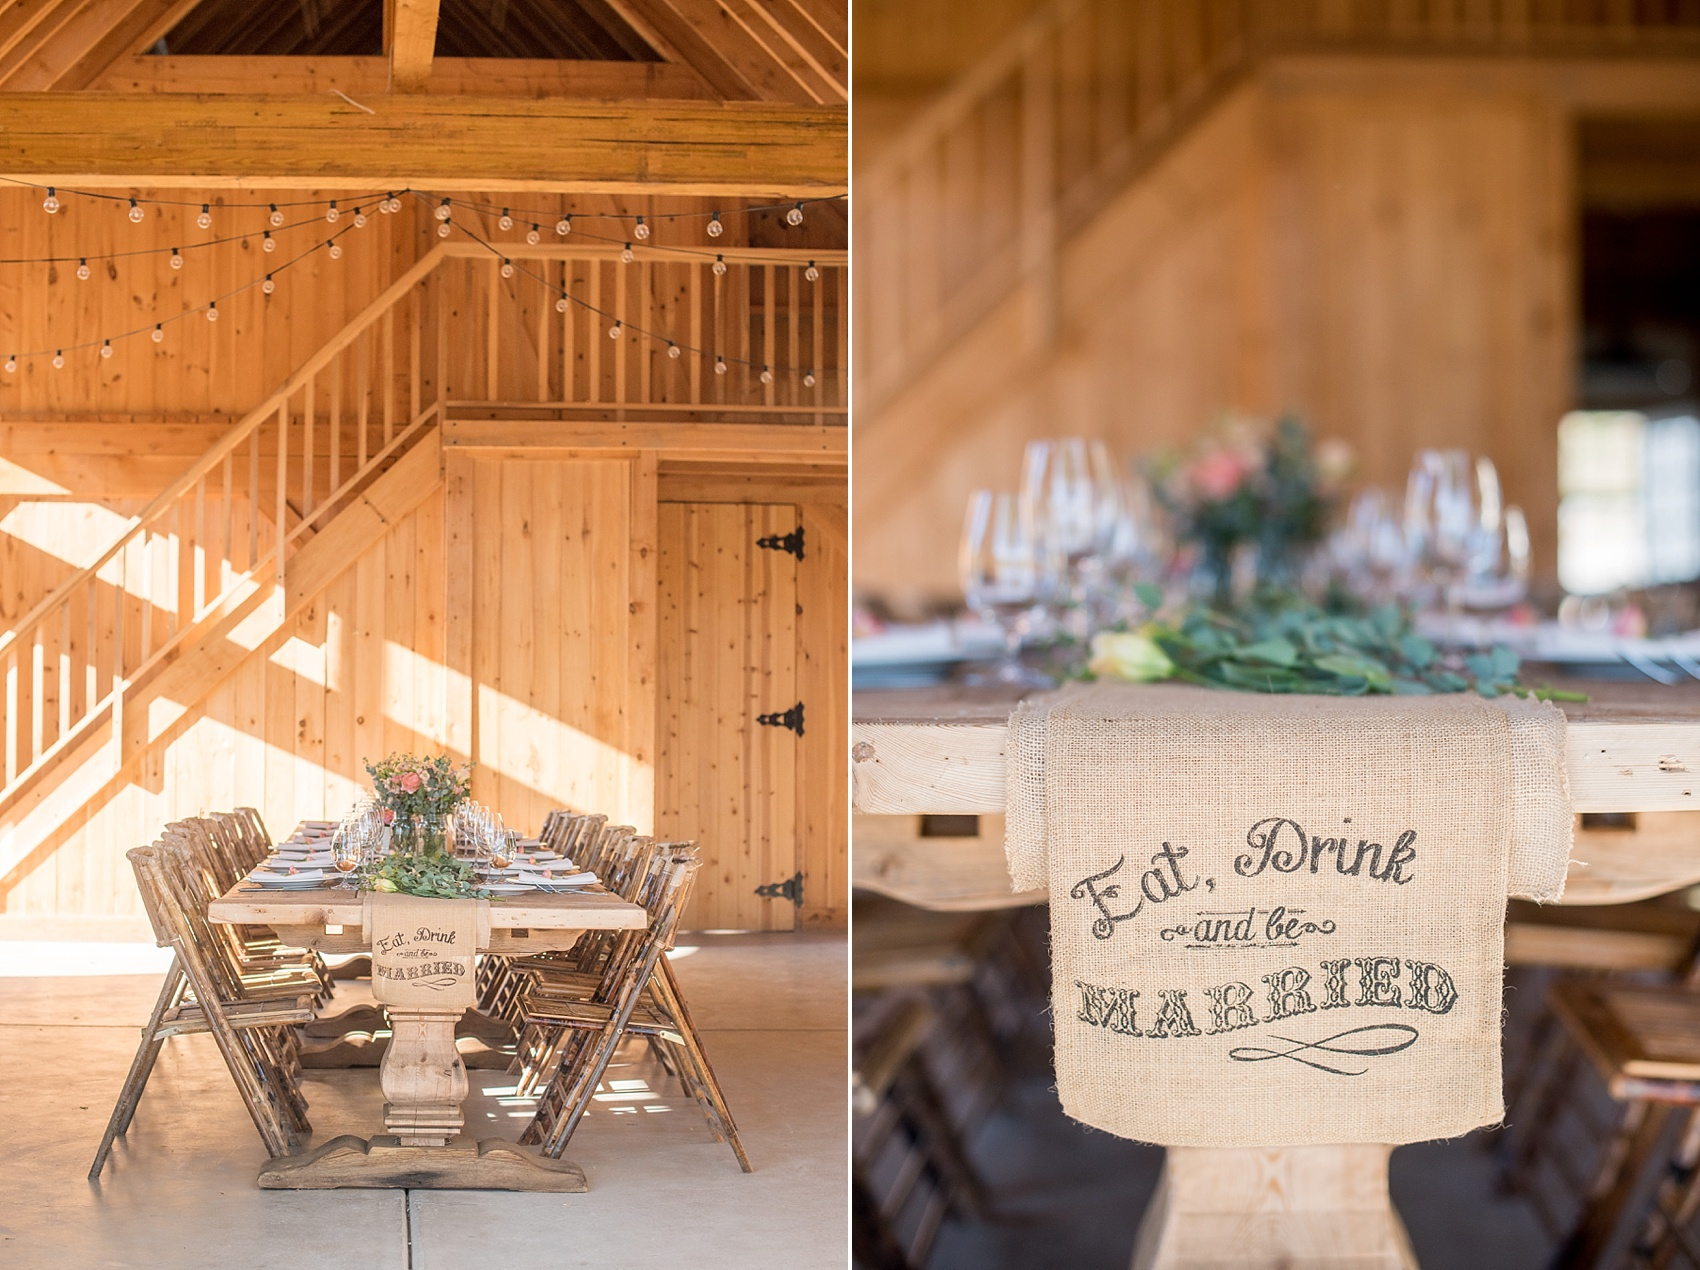 Spring vineyard elopement with barn reception and farm table. Photos by Mikkel Paige, destination wedding photographer. Held at HammerSky Vineyard, south of San Francisco.